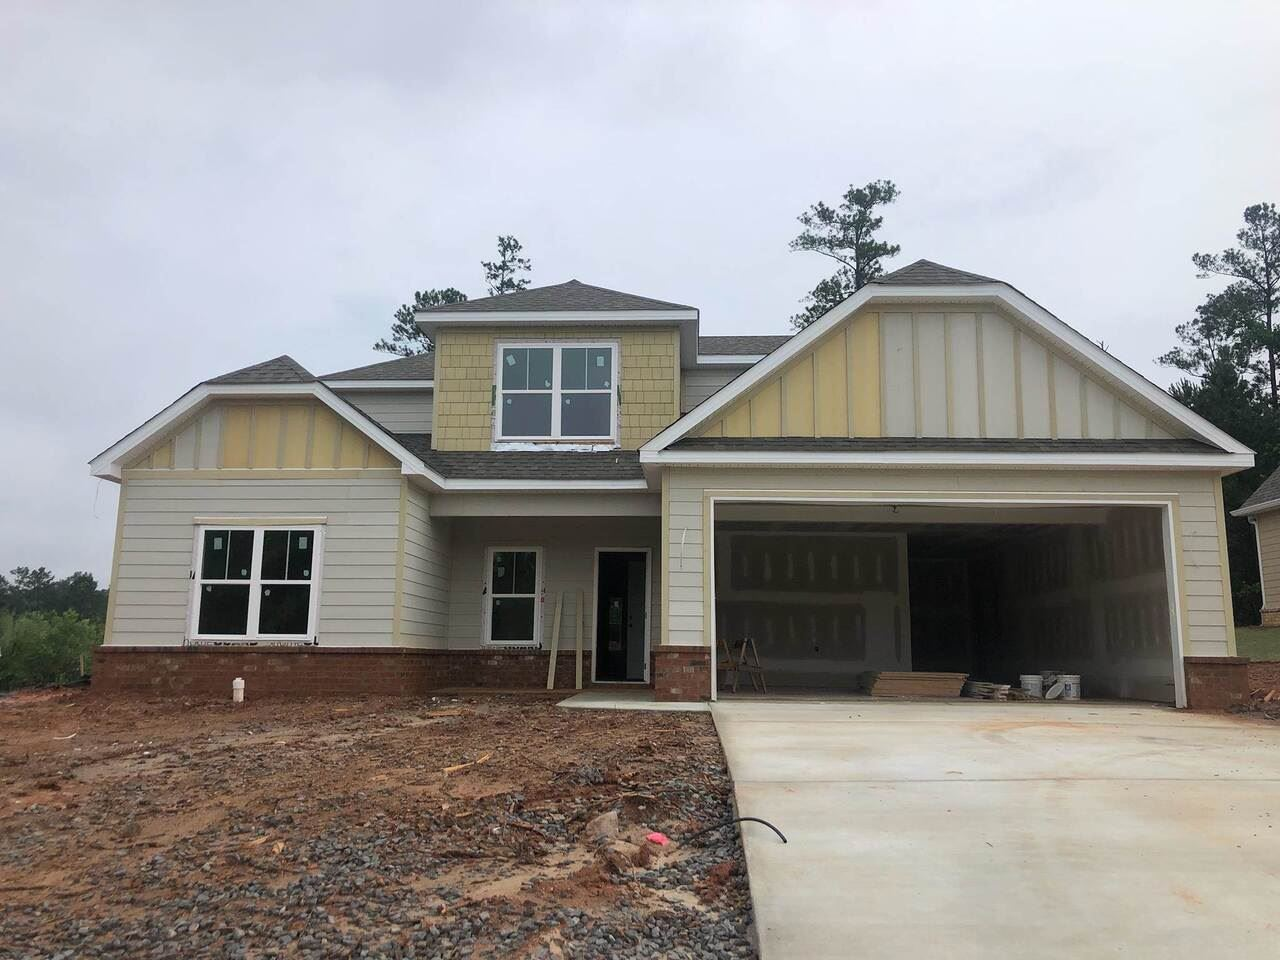 405 Lakeview Pl, Macon, GA 31211 - MLS#: 8970534